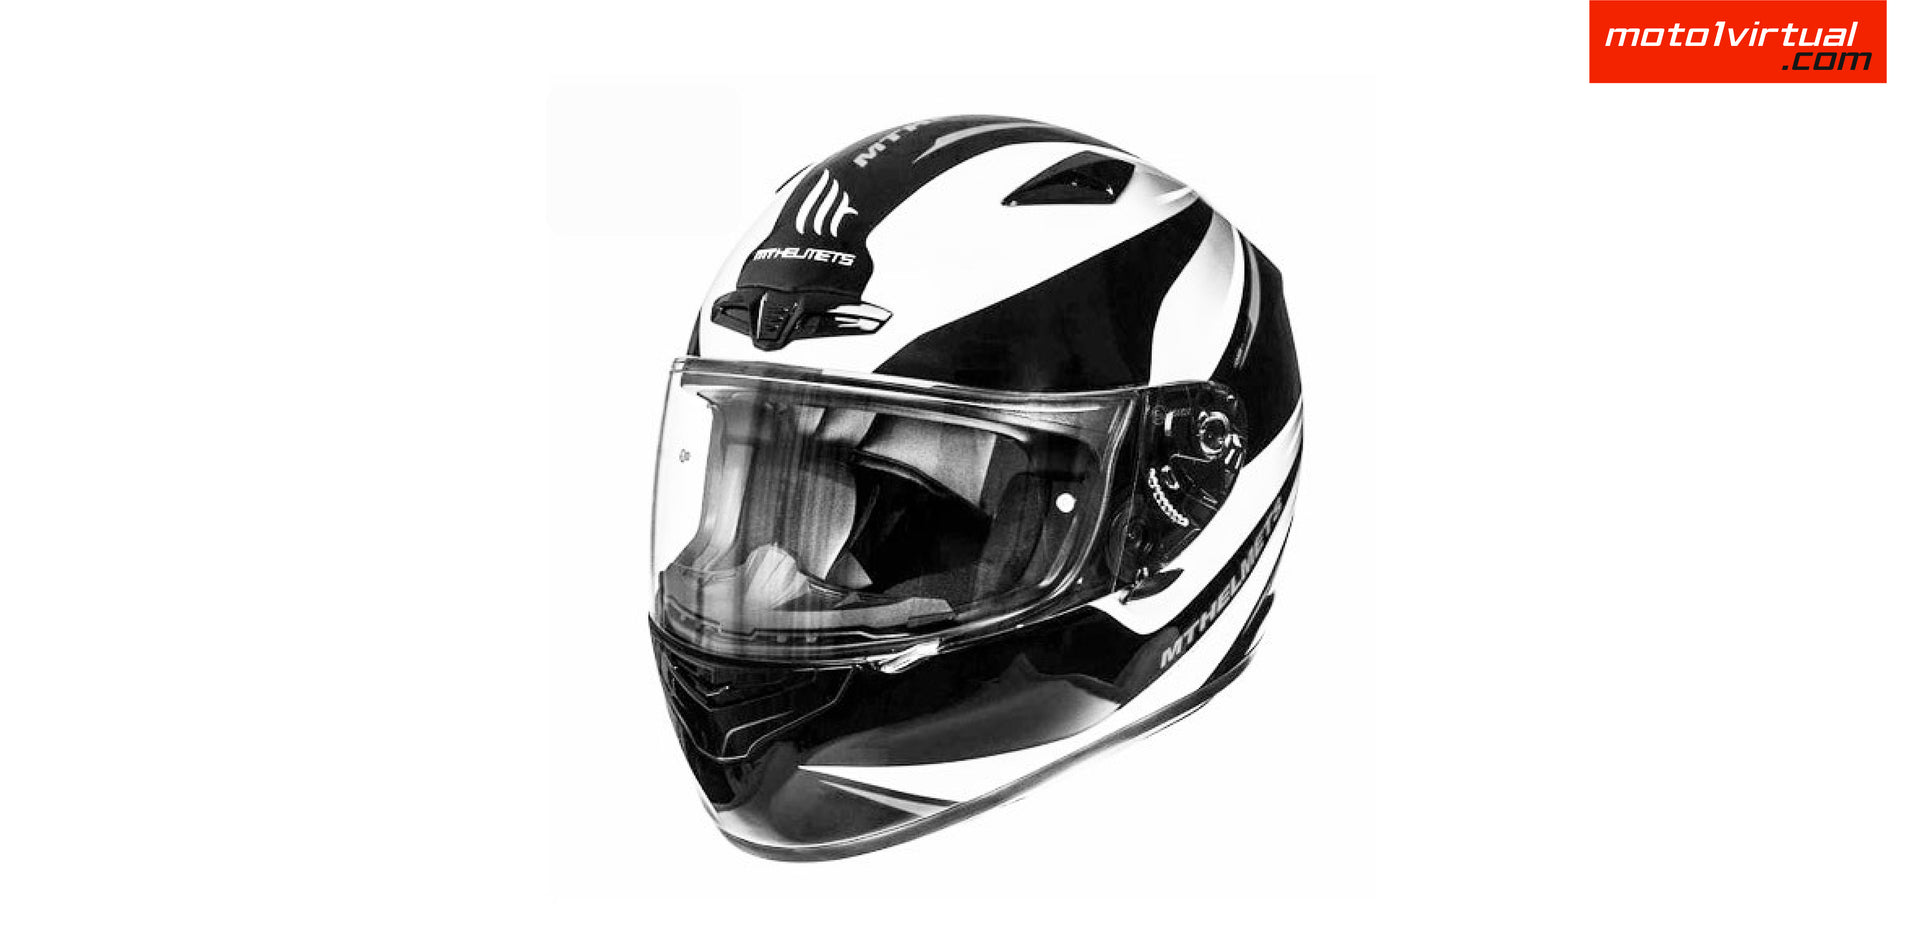 Casco INTEGRAL MT MATRIX INCISOR - Motouno